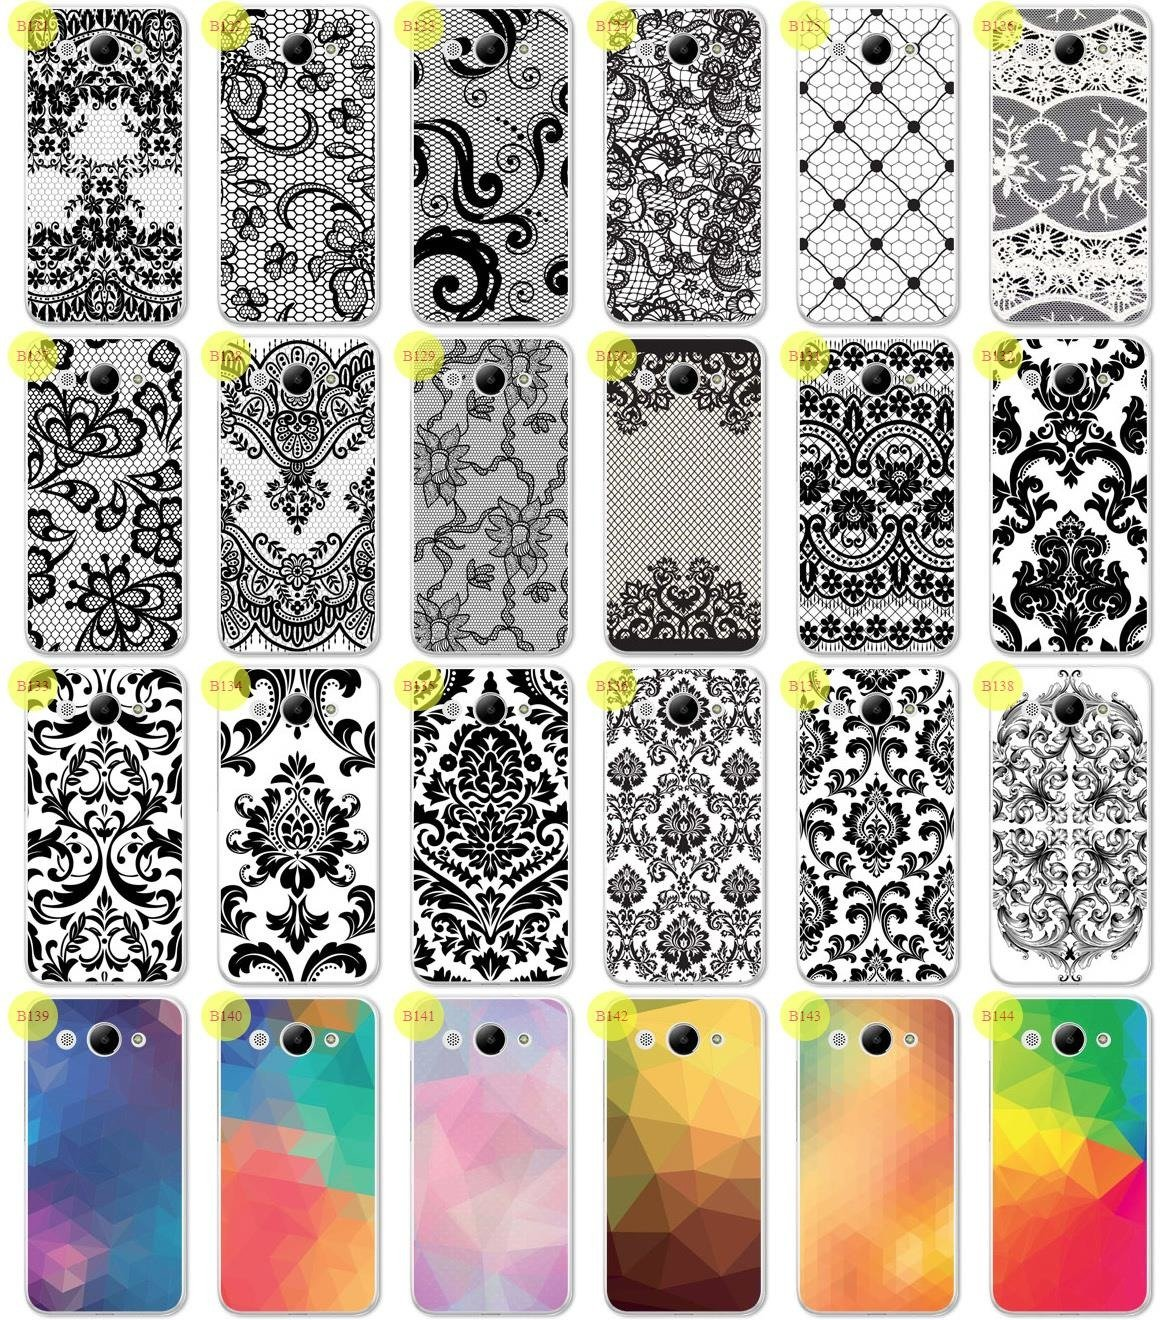 Back Case 0.3mm Kreatui PRINT COVER ArtCase HUAWEI Y3 2017 + GLASS 9H